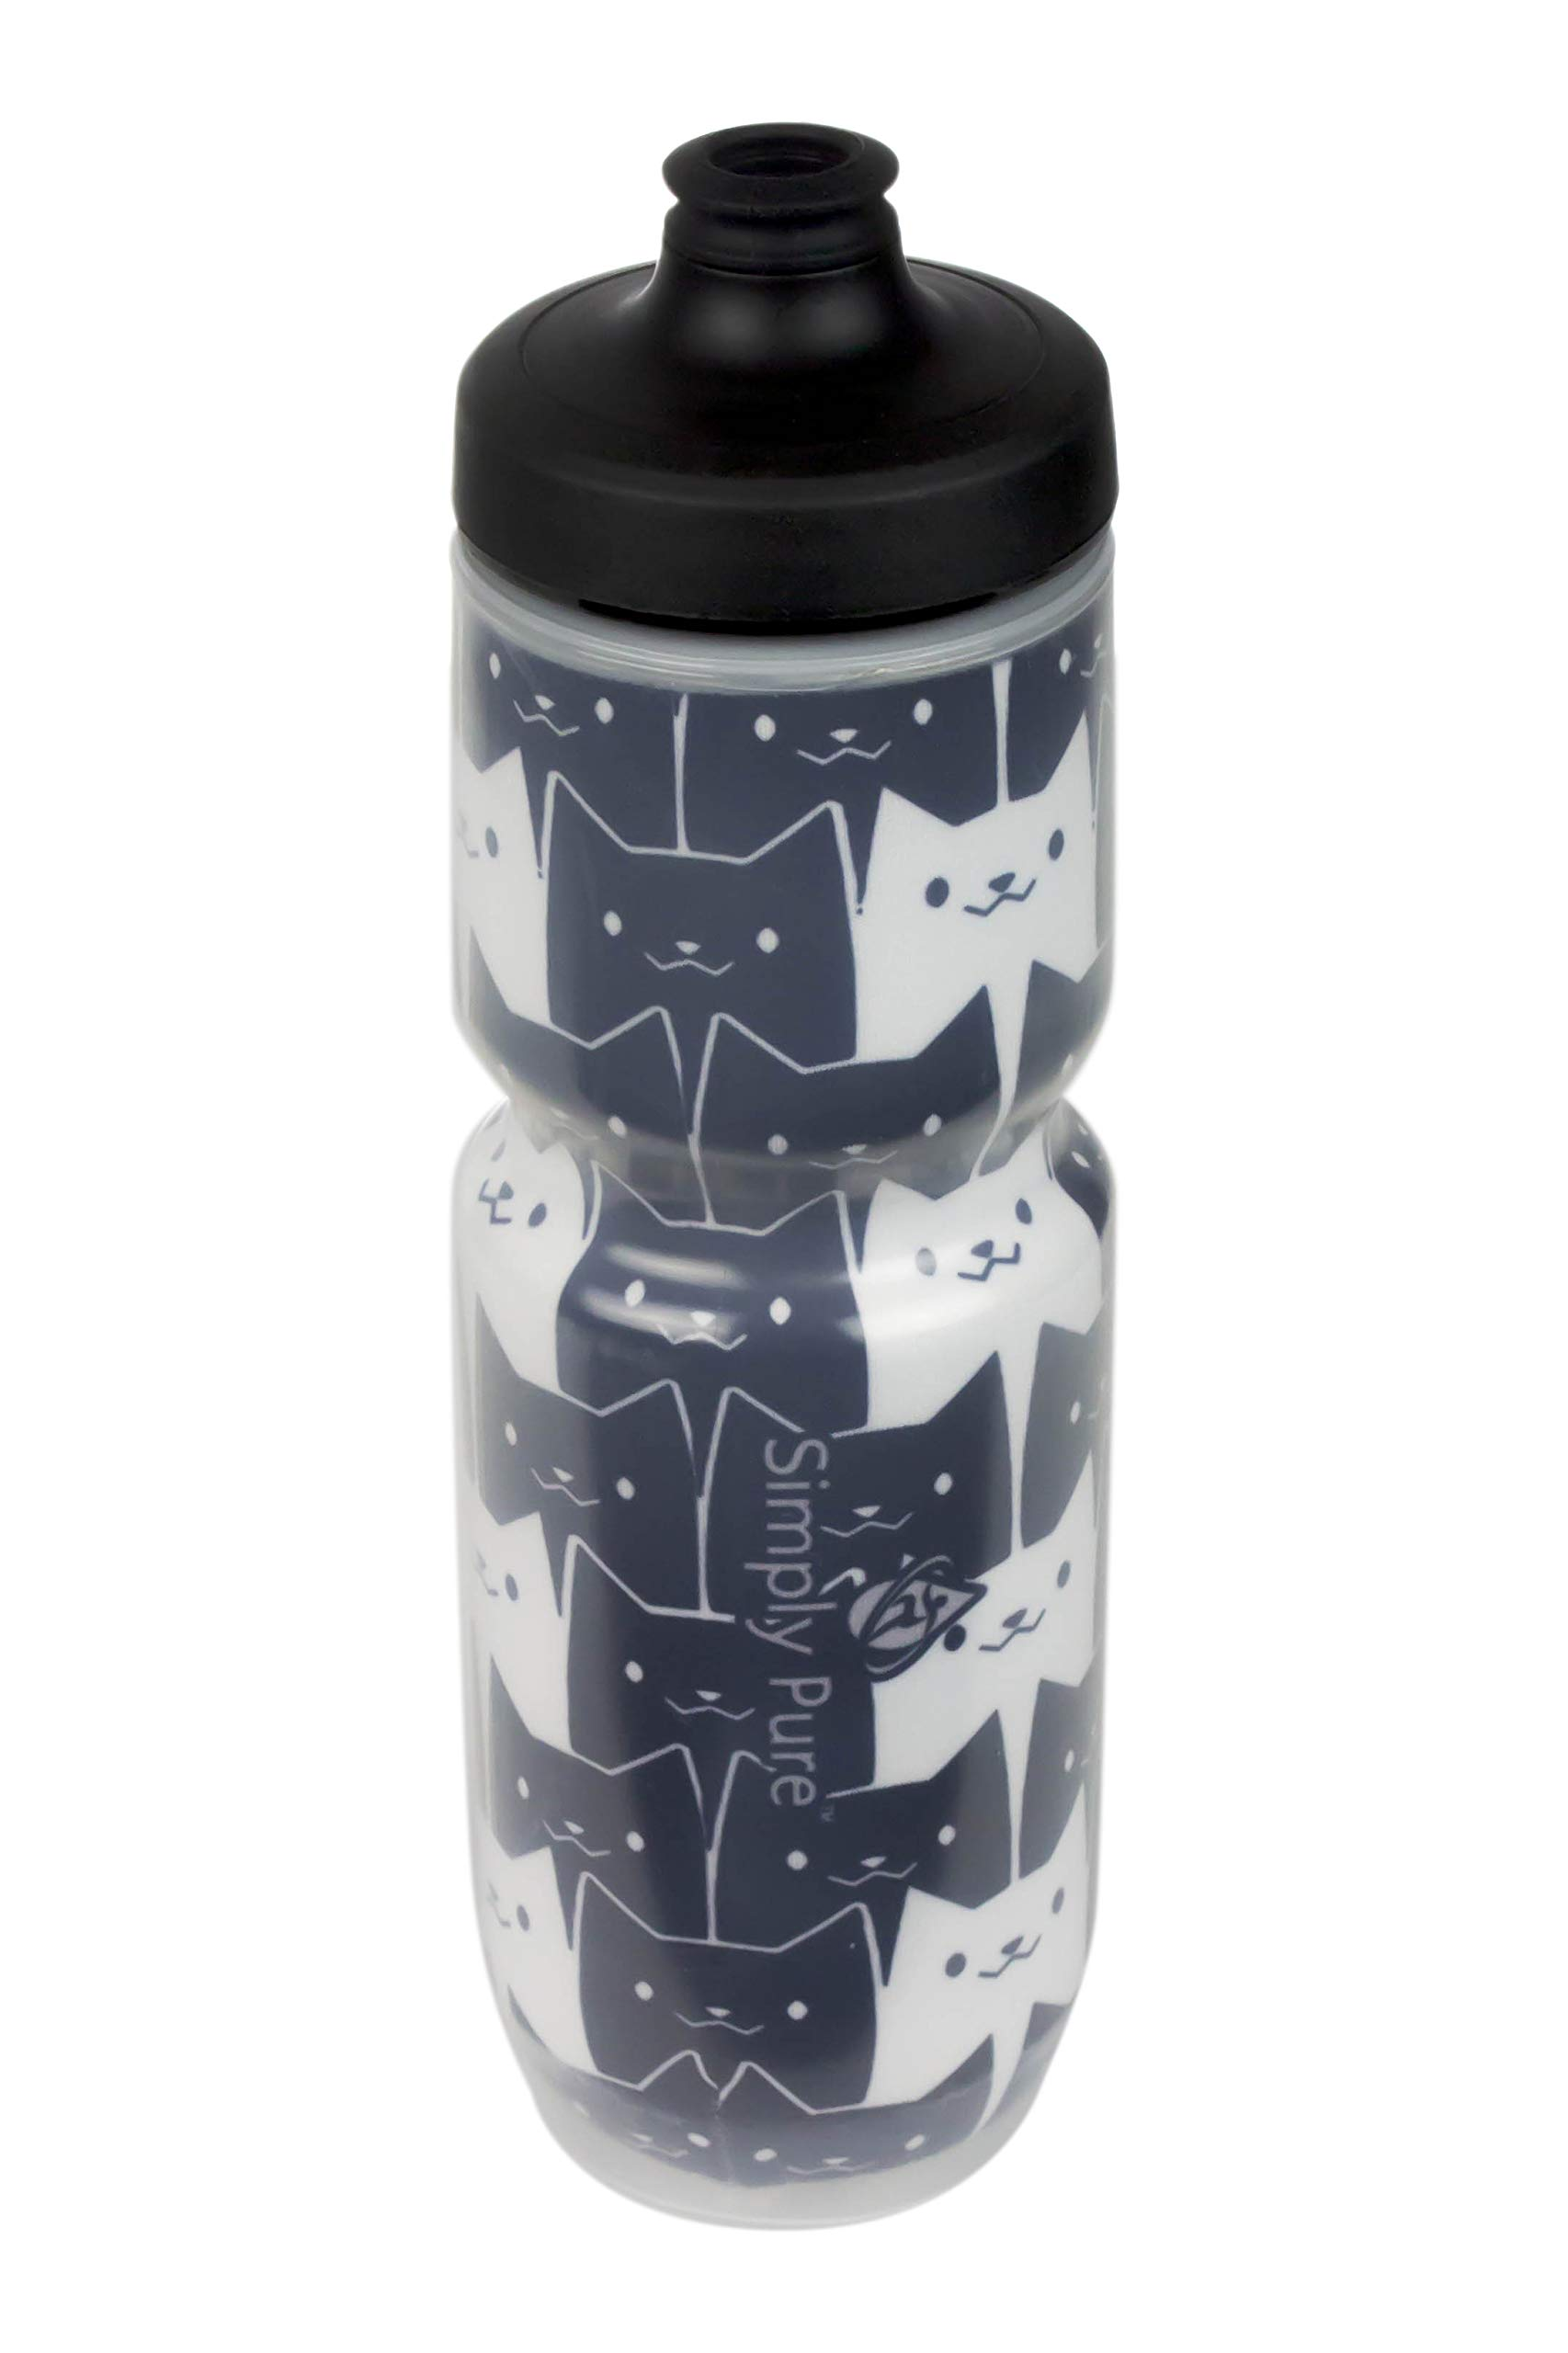 Cat One Size Watergate Cap Watergate Cap BPA Free Sport Bottle 20/% Colder Than Other Insulated Bottles Limited Edition Specialized Water Bottles Simply Pure Hydration Purist 23 oz Insulated Water Bottle